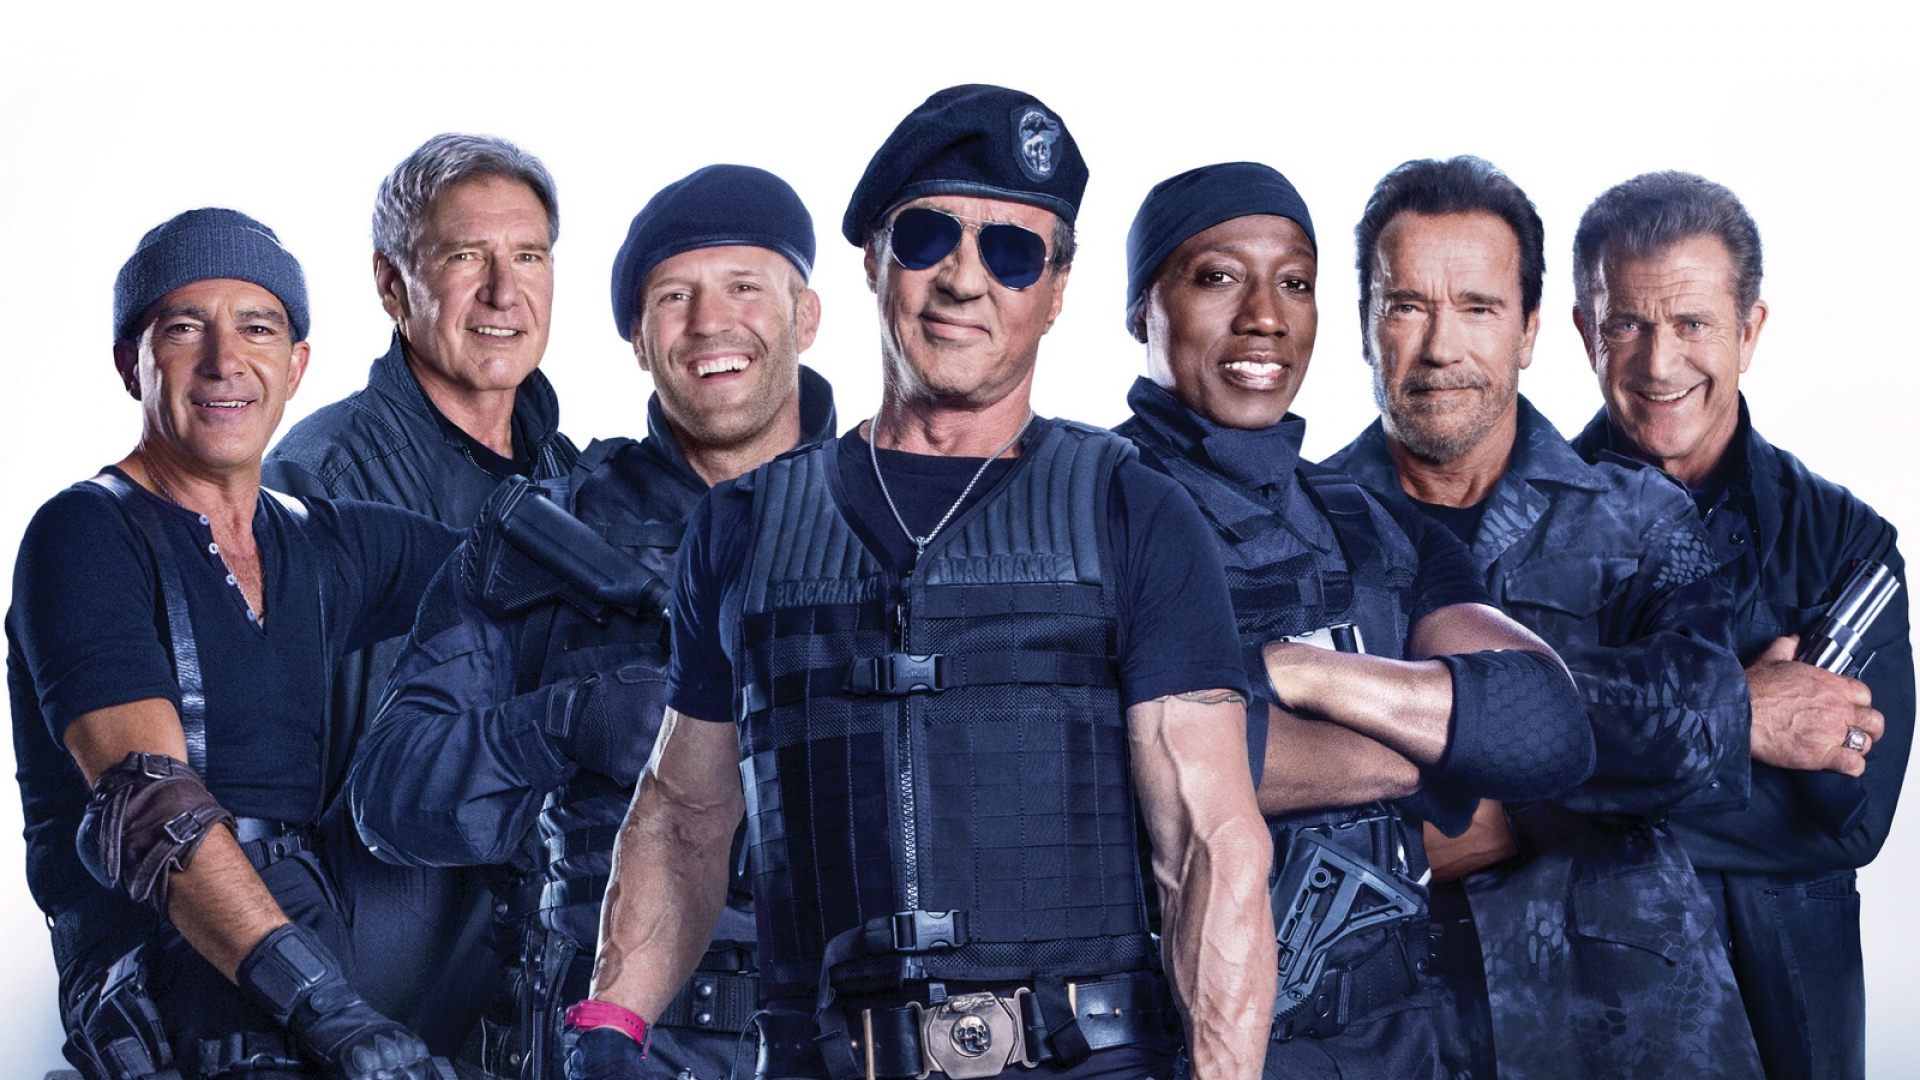 download wallpaper 1920x1080 the expendables 3, sylvester stallone